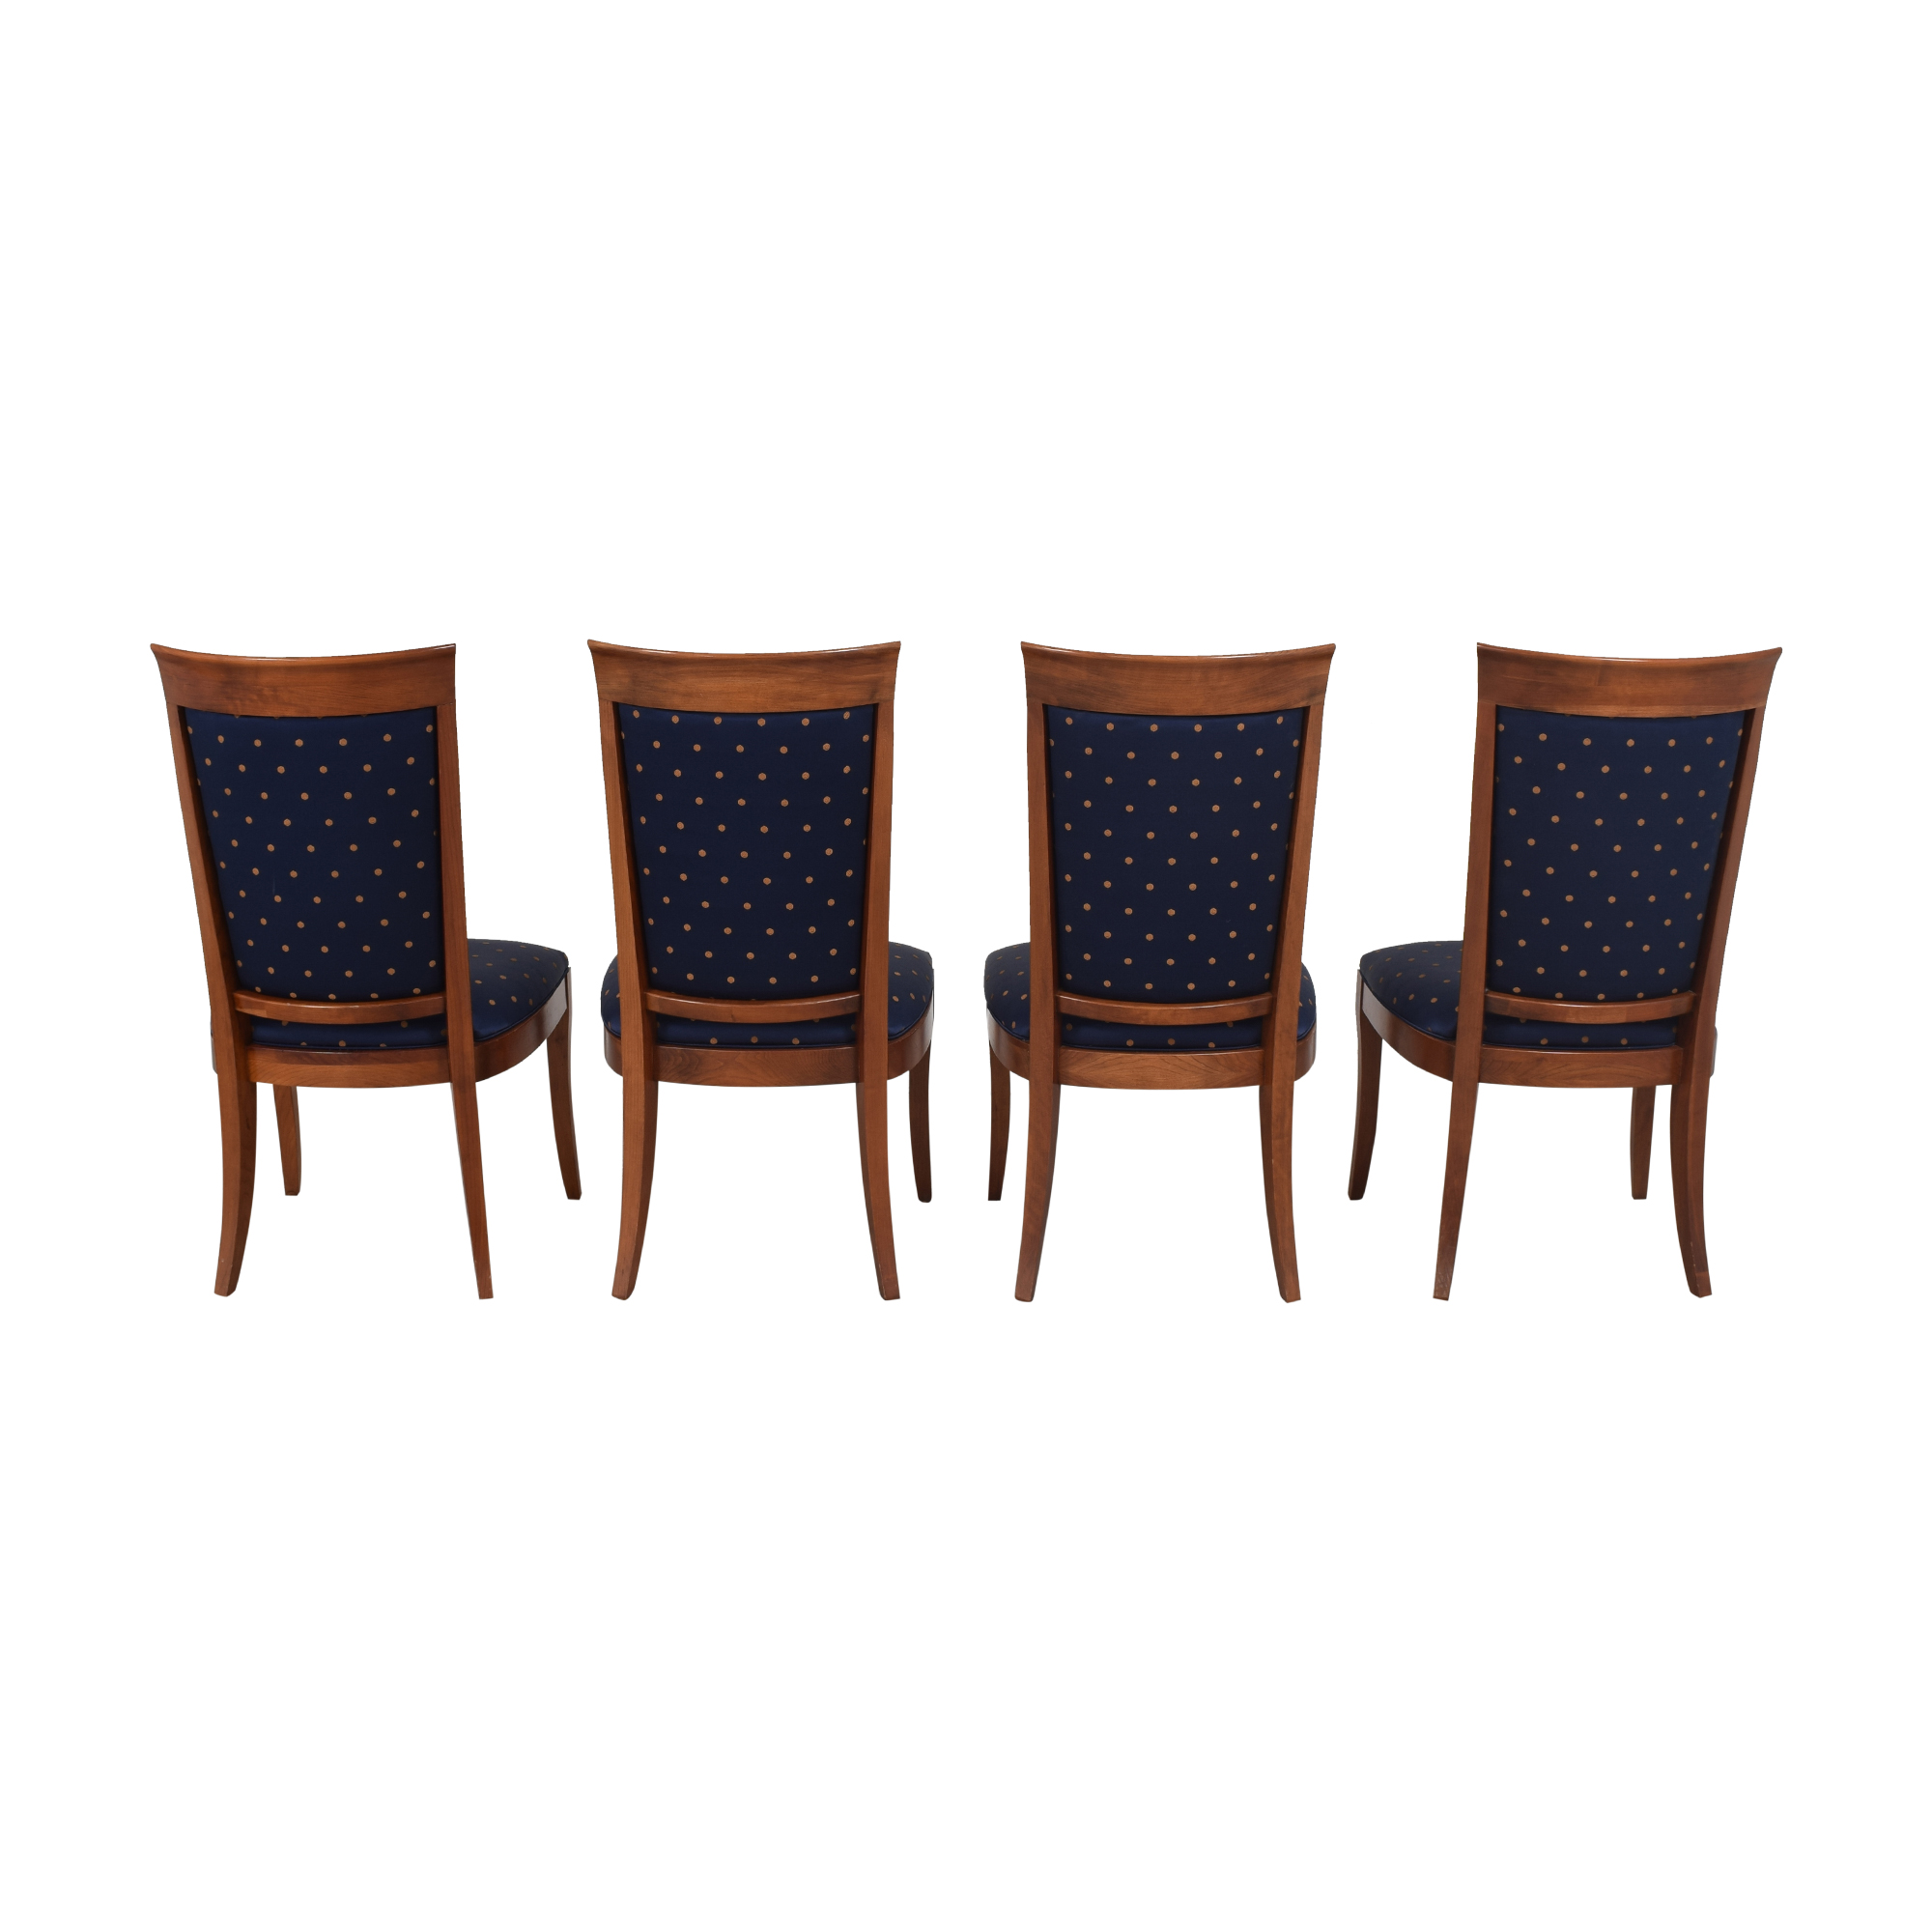 Ethan Allen Ethan Allen Medallion Collection Dining Side Chairs Chairs